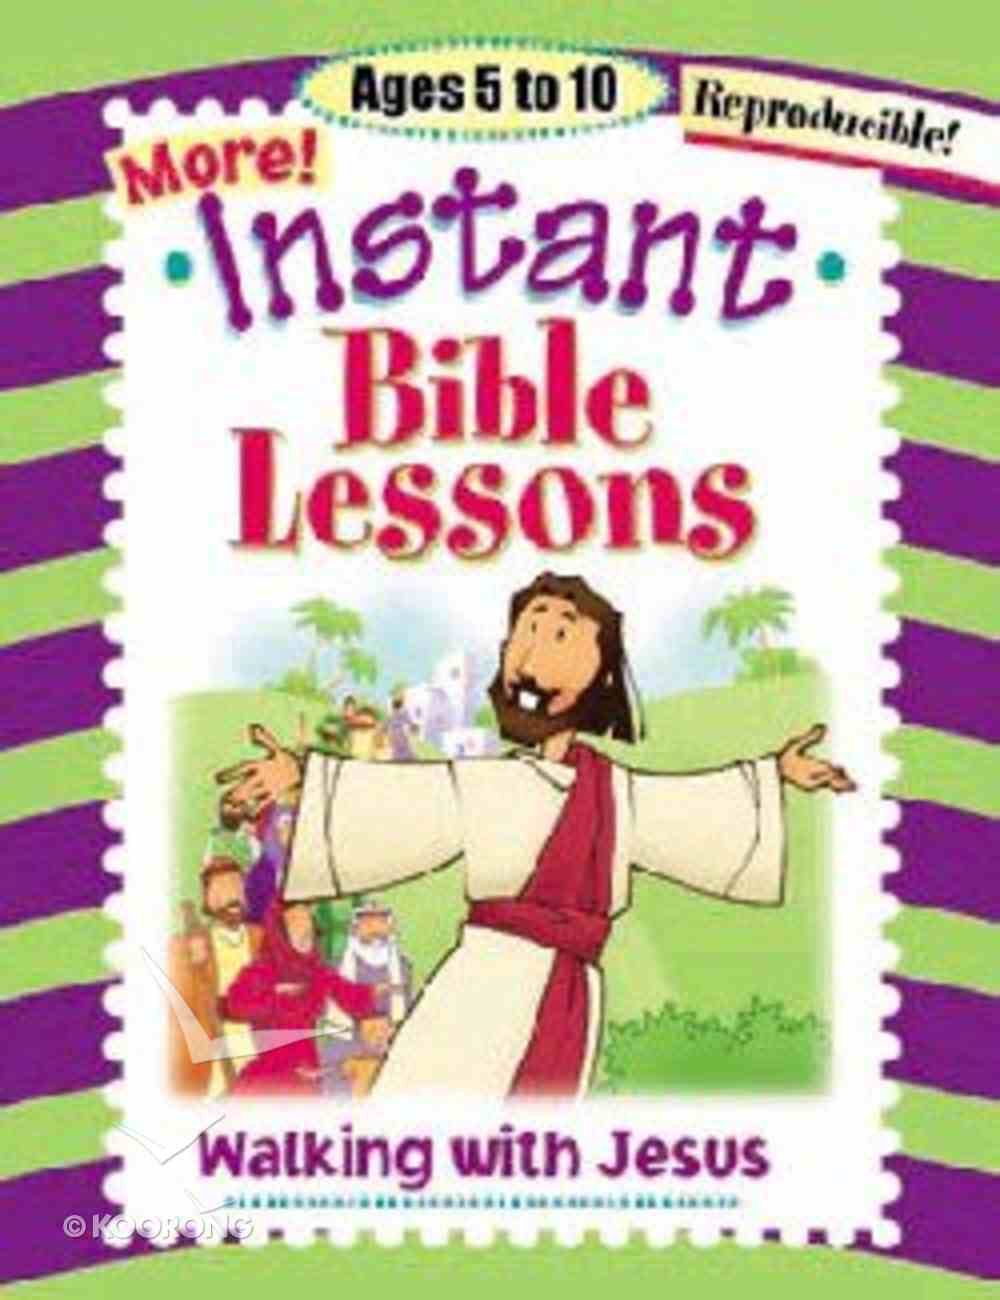 Walking With Jesus (Reproducible) (Instant Bible Lessons Series) Paperback